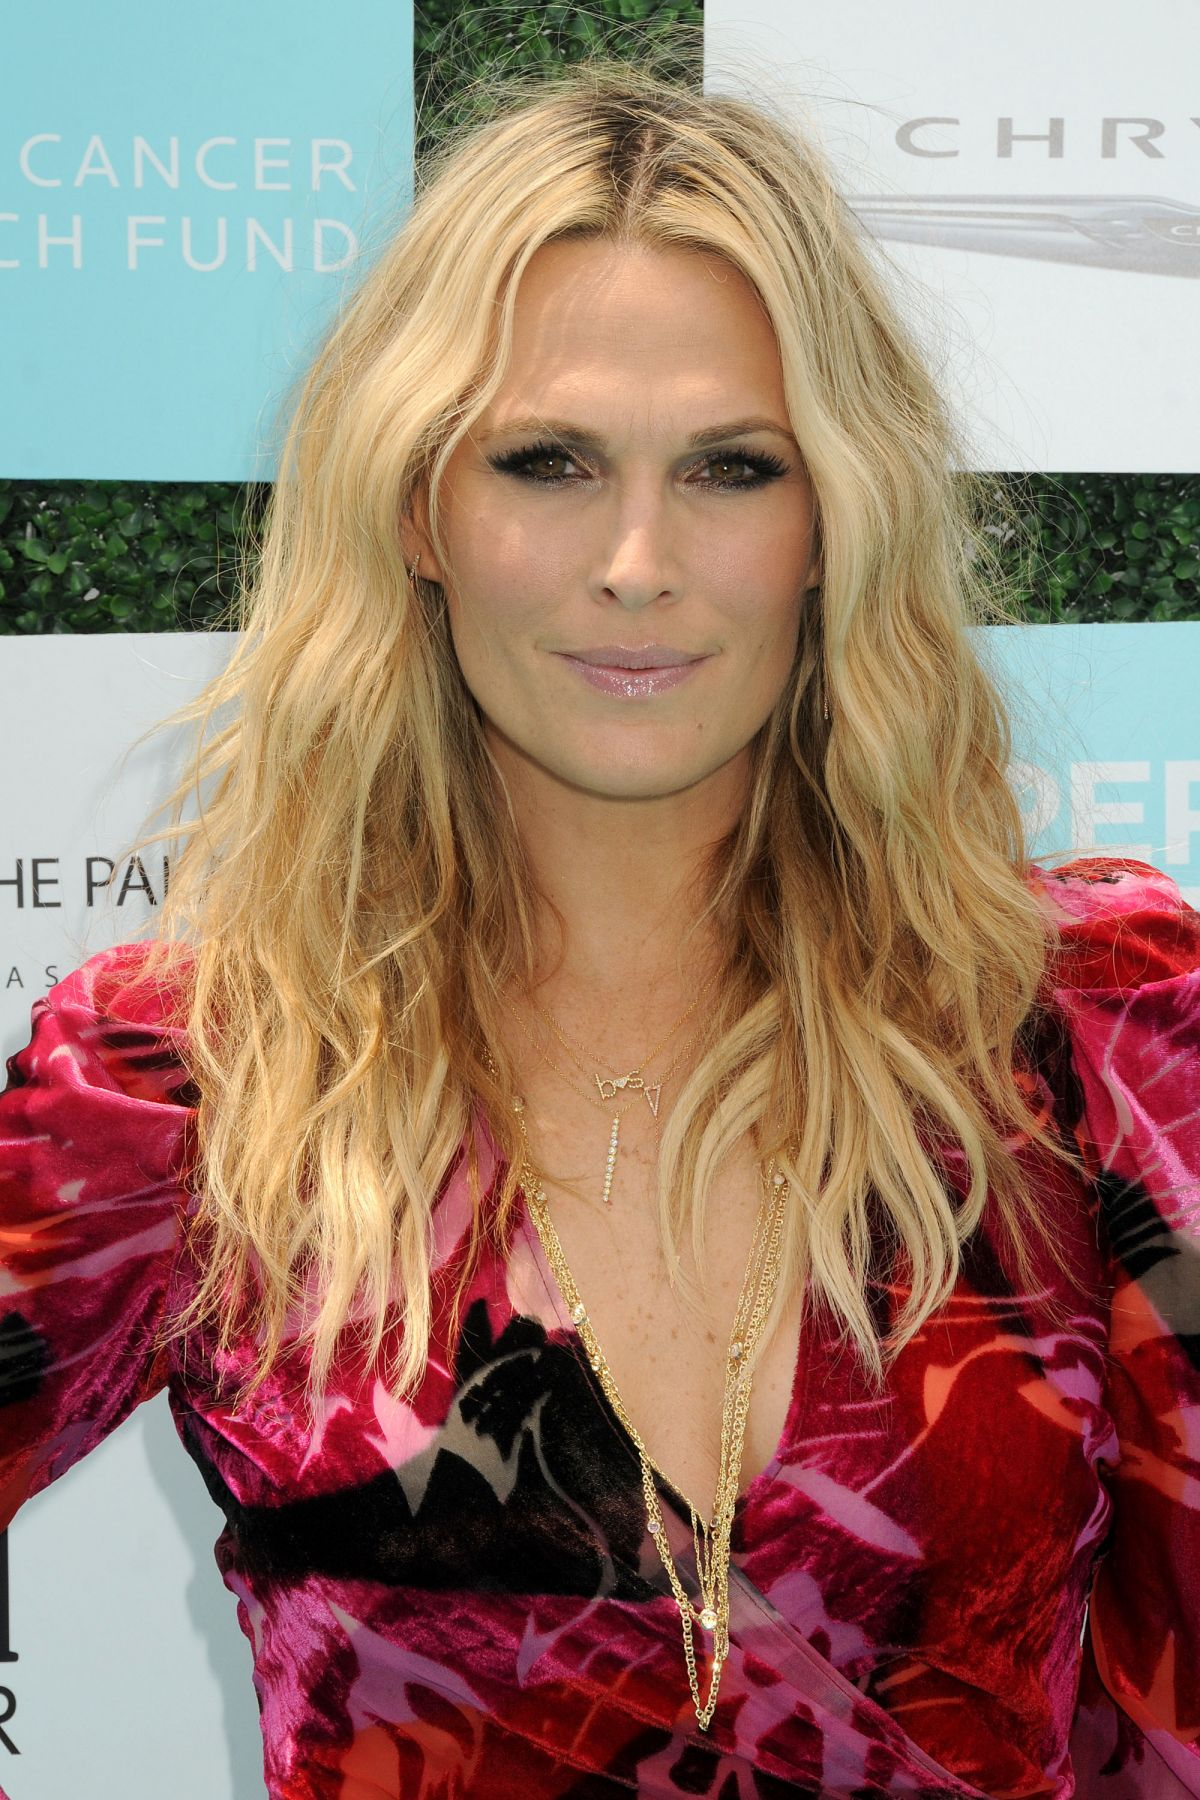 Molly sims archives page 2 of 7 hawtcelebs hawtcelebs - Molly Sims Archives Page 2 Of 7 Hawtcelebs Hawtcelebs Molly Sims At 2015 Super Saturday Download